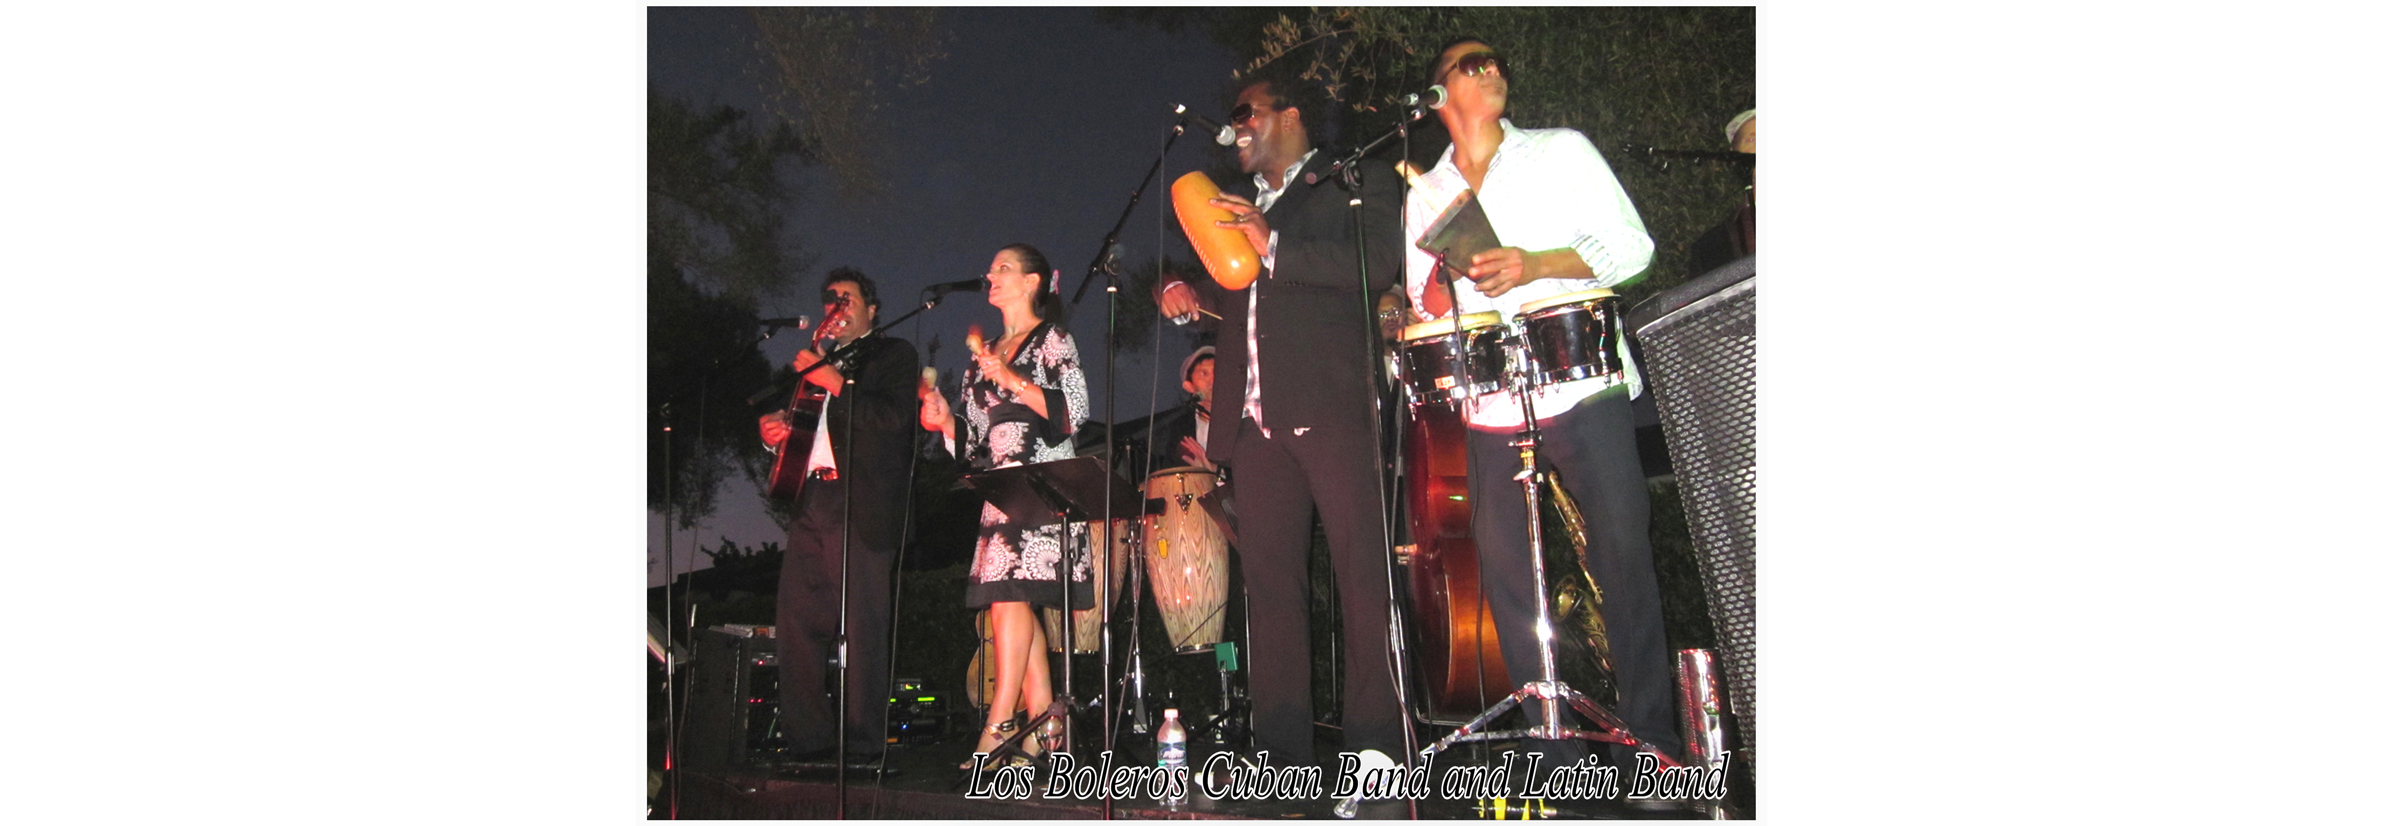 salsa band for wedding,  a great Cuban music band, wedding music band, wedding band, Cuban band for wedding, cuban band, latin band